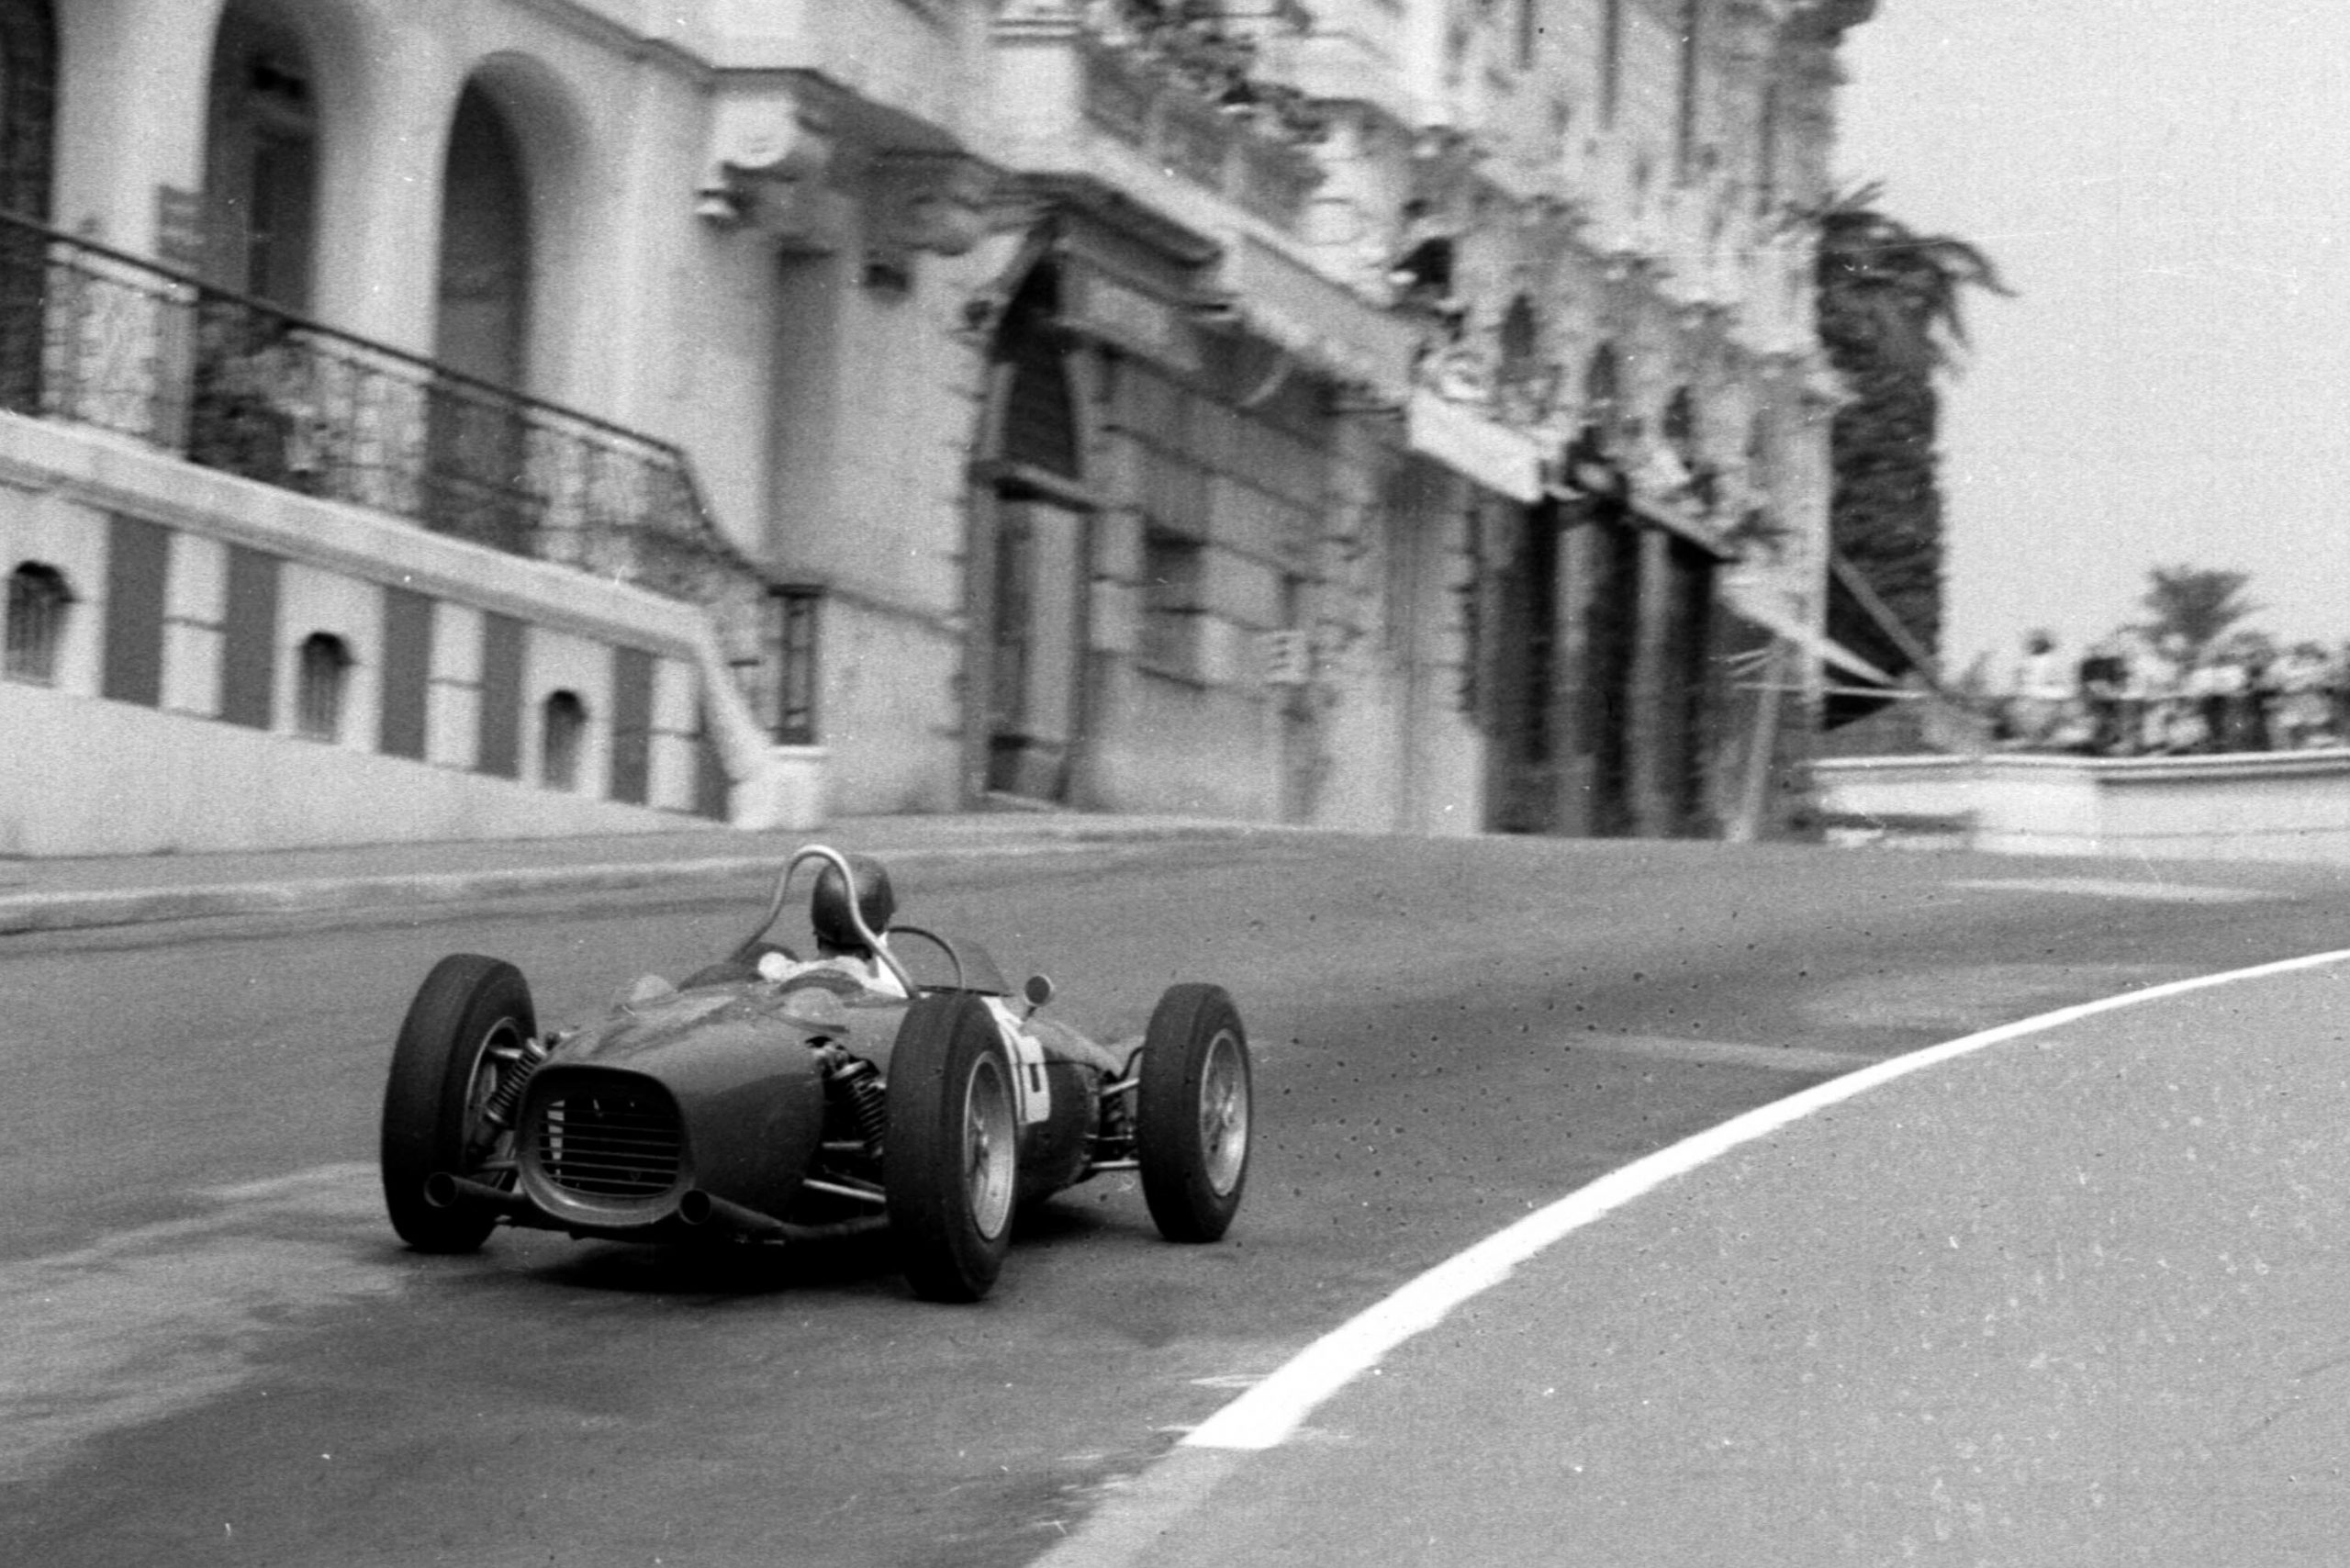 Richie Ginther in his Ferrari 156.